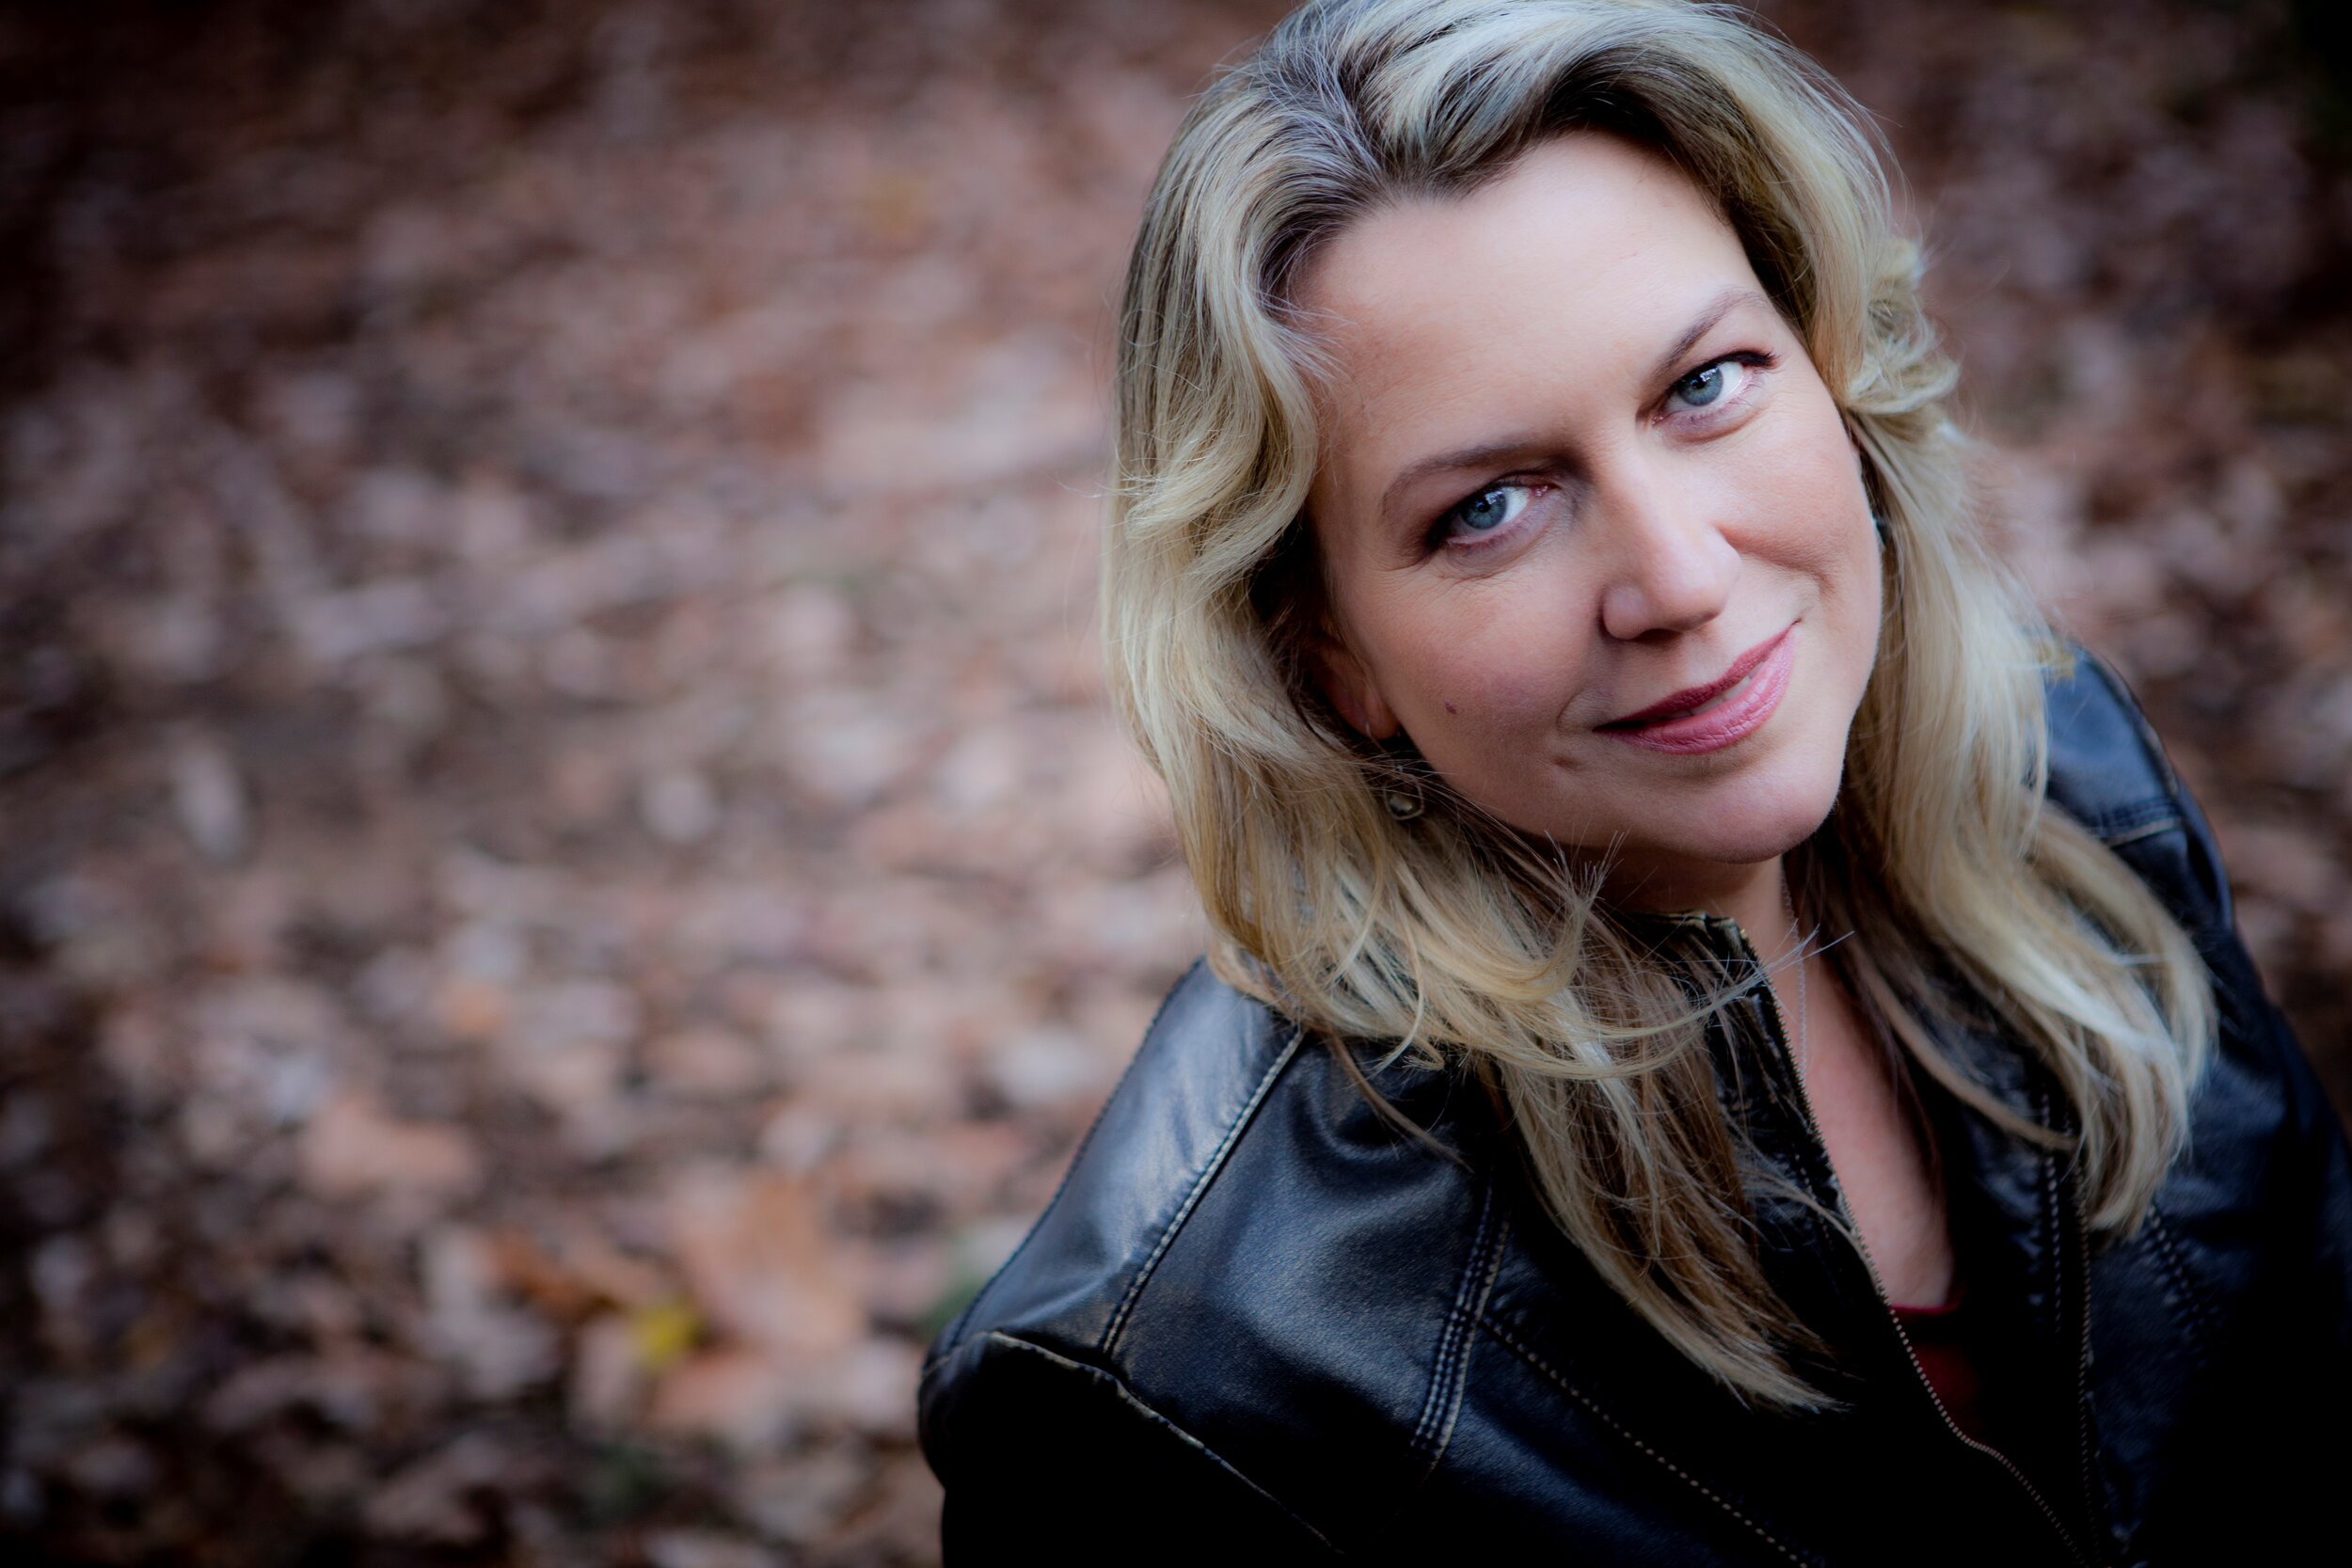 Cheryl Strayed Joins Chasing Grace Project for Episode 3 premiere event in Los Angeles on Nov 14.  - TICKETS ARE ON SALE NOW